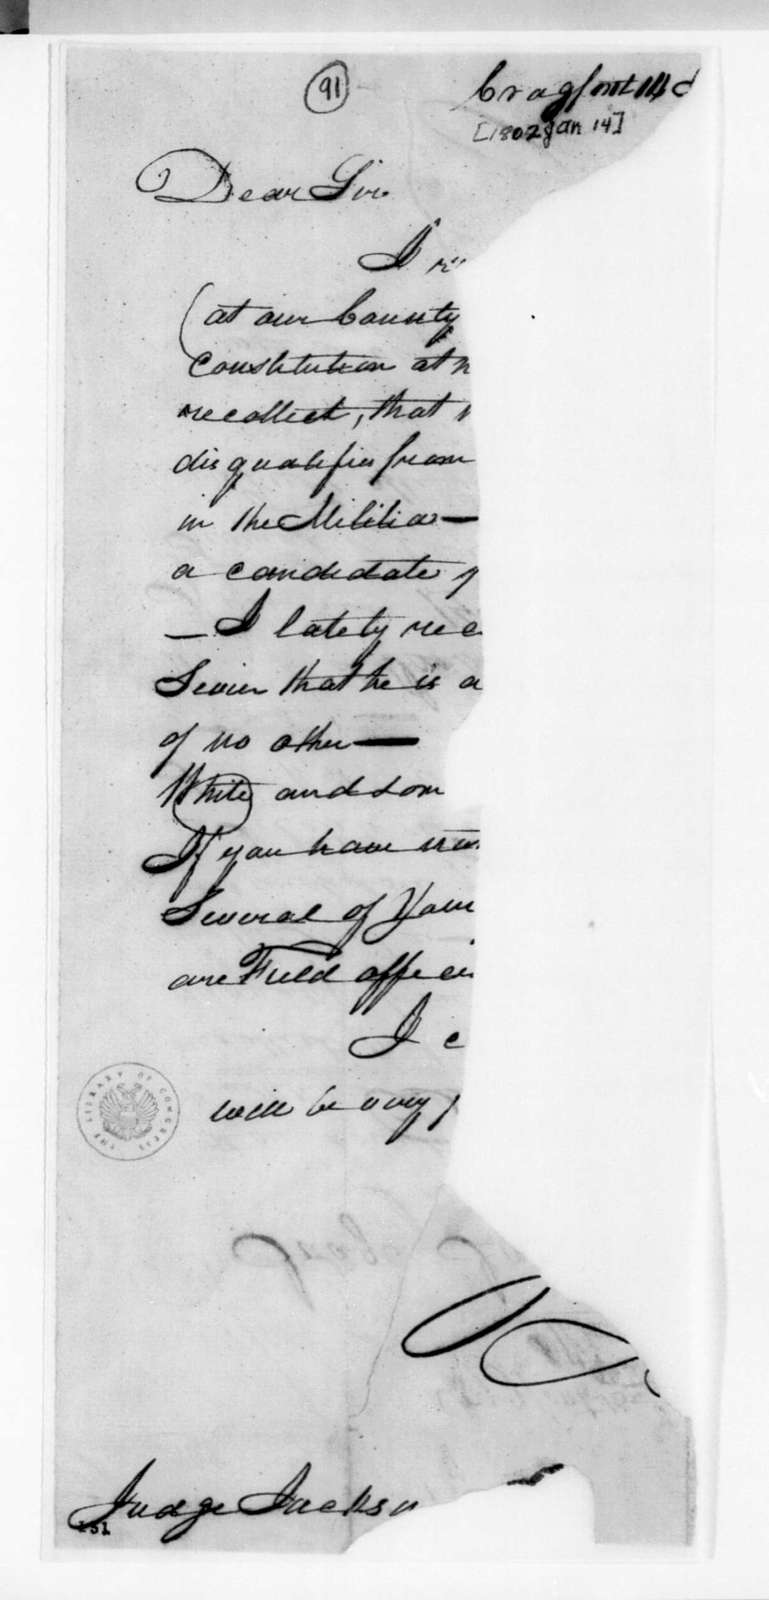 James Winchester to Andrew Jackson, January 14, 1802